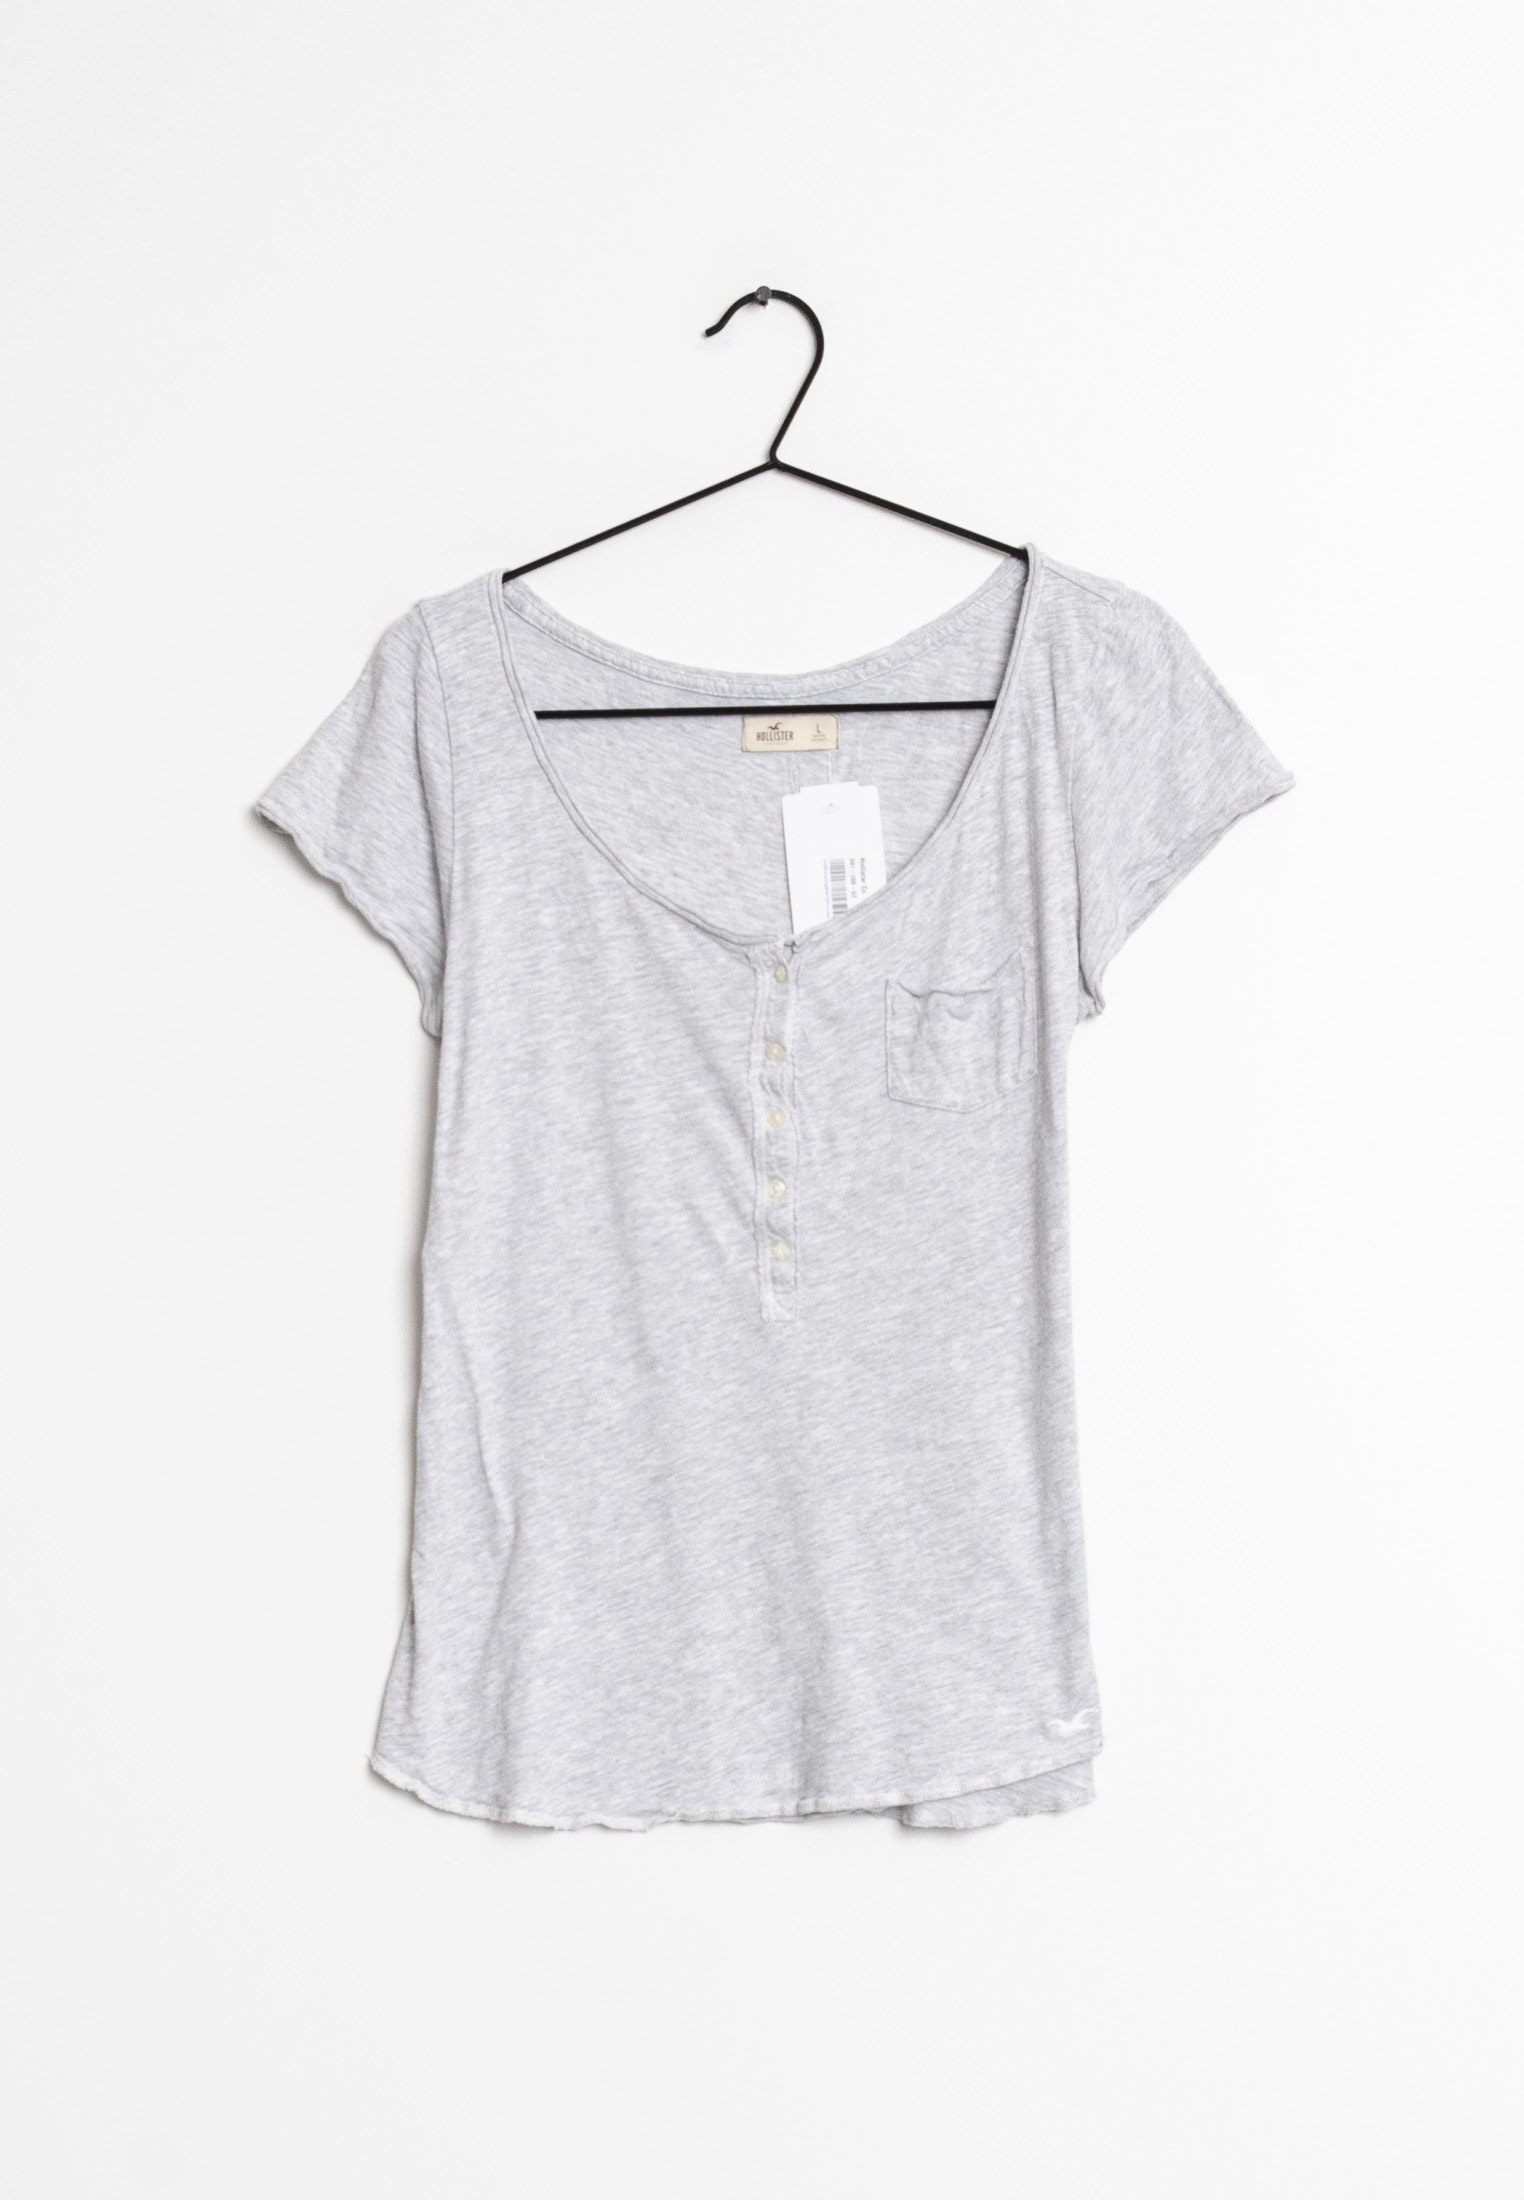 Hollister Co. T-Shirt Grau Gr.L